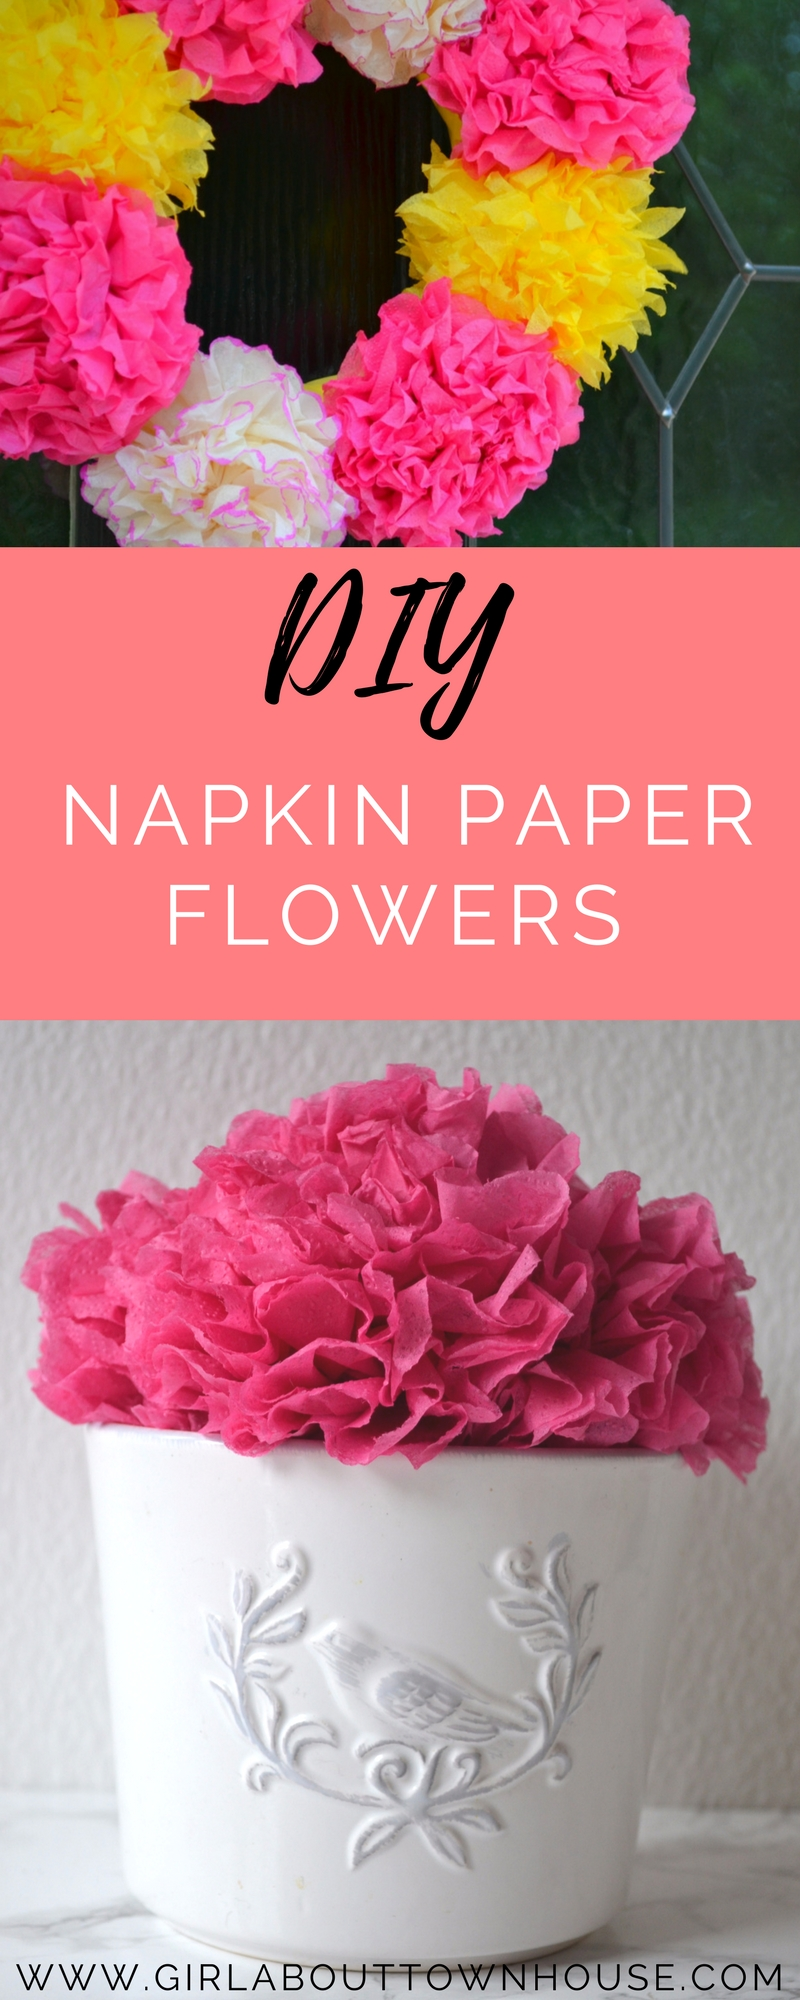 Flower Making With Napkins Wreaths Garlands Girl About Townhouse